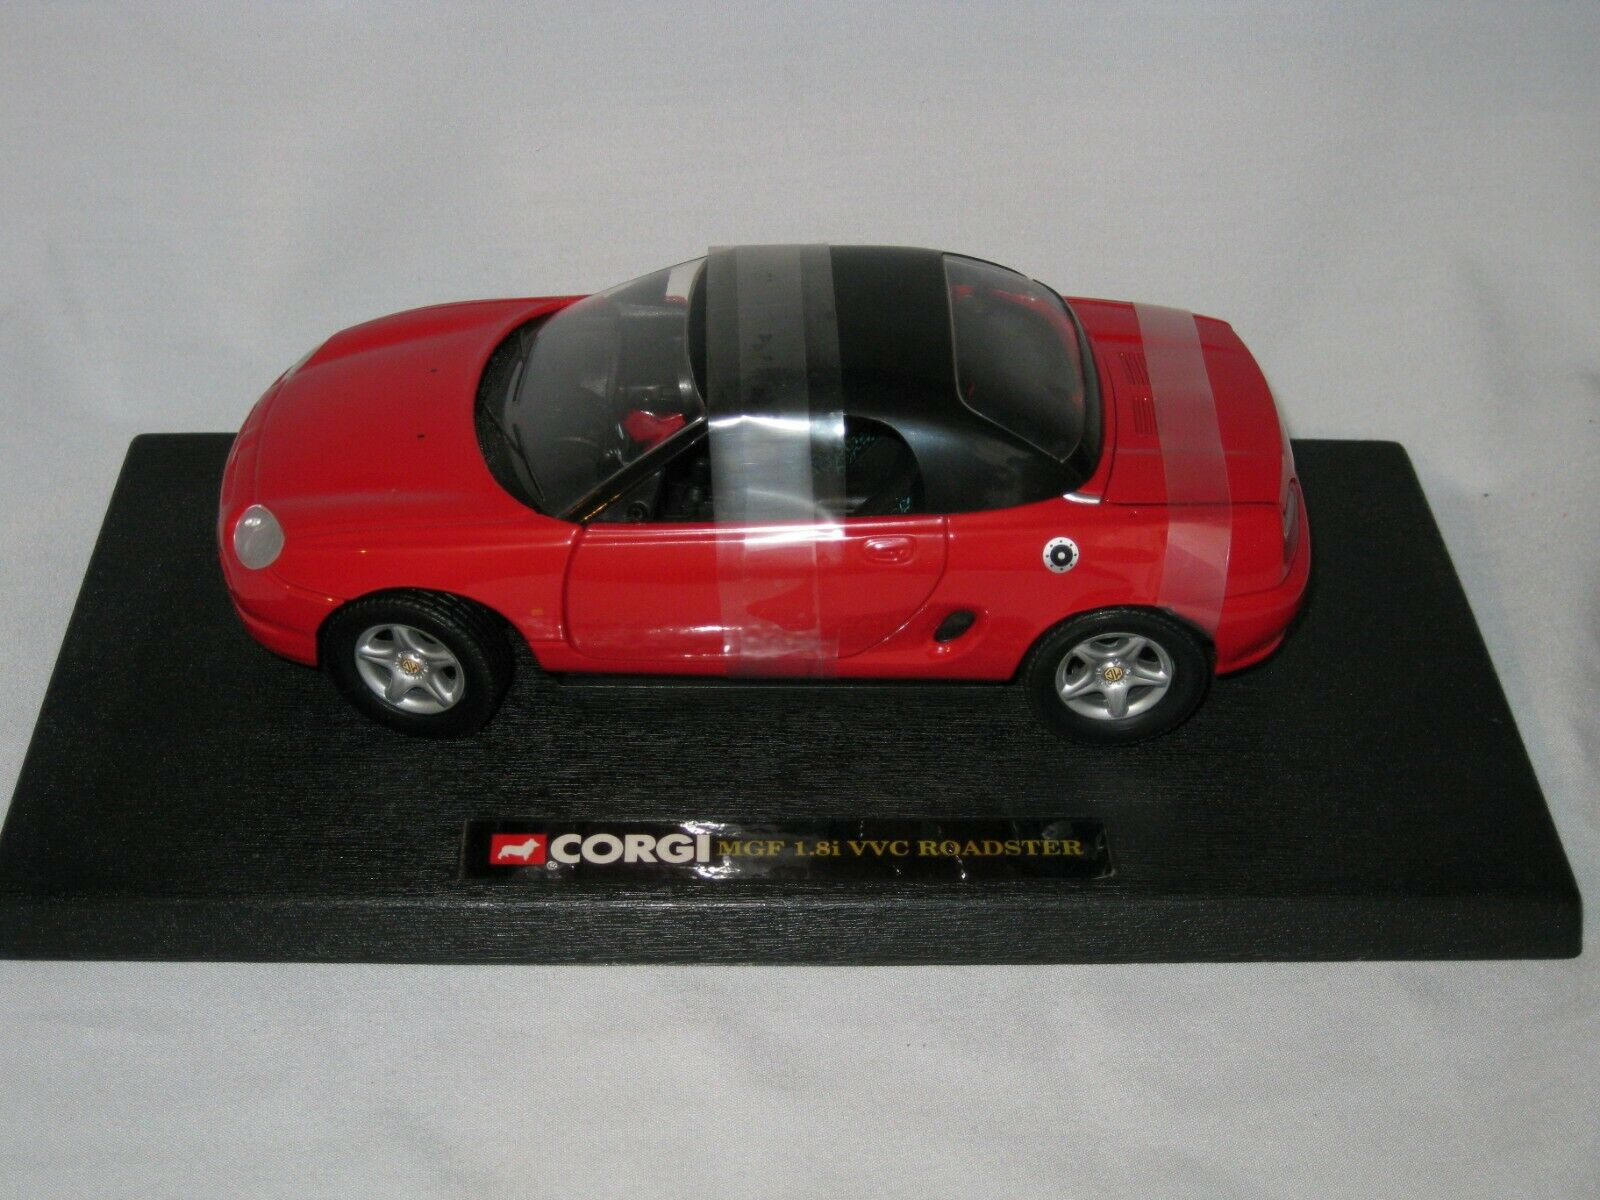 CORGI 95105 1 18 - MGF  1.8i VVC ROADSTER - EXCELLENT BOXED CONDITION